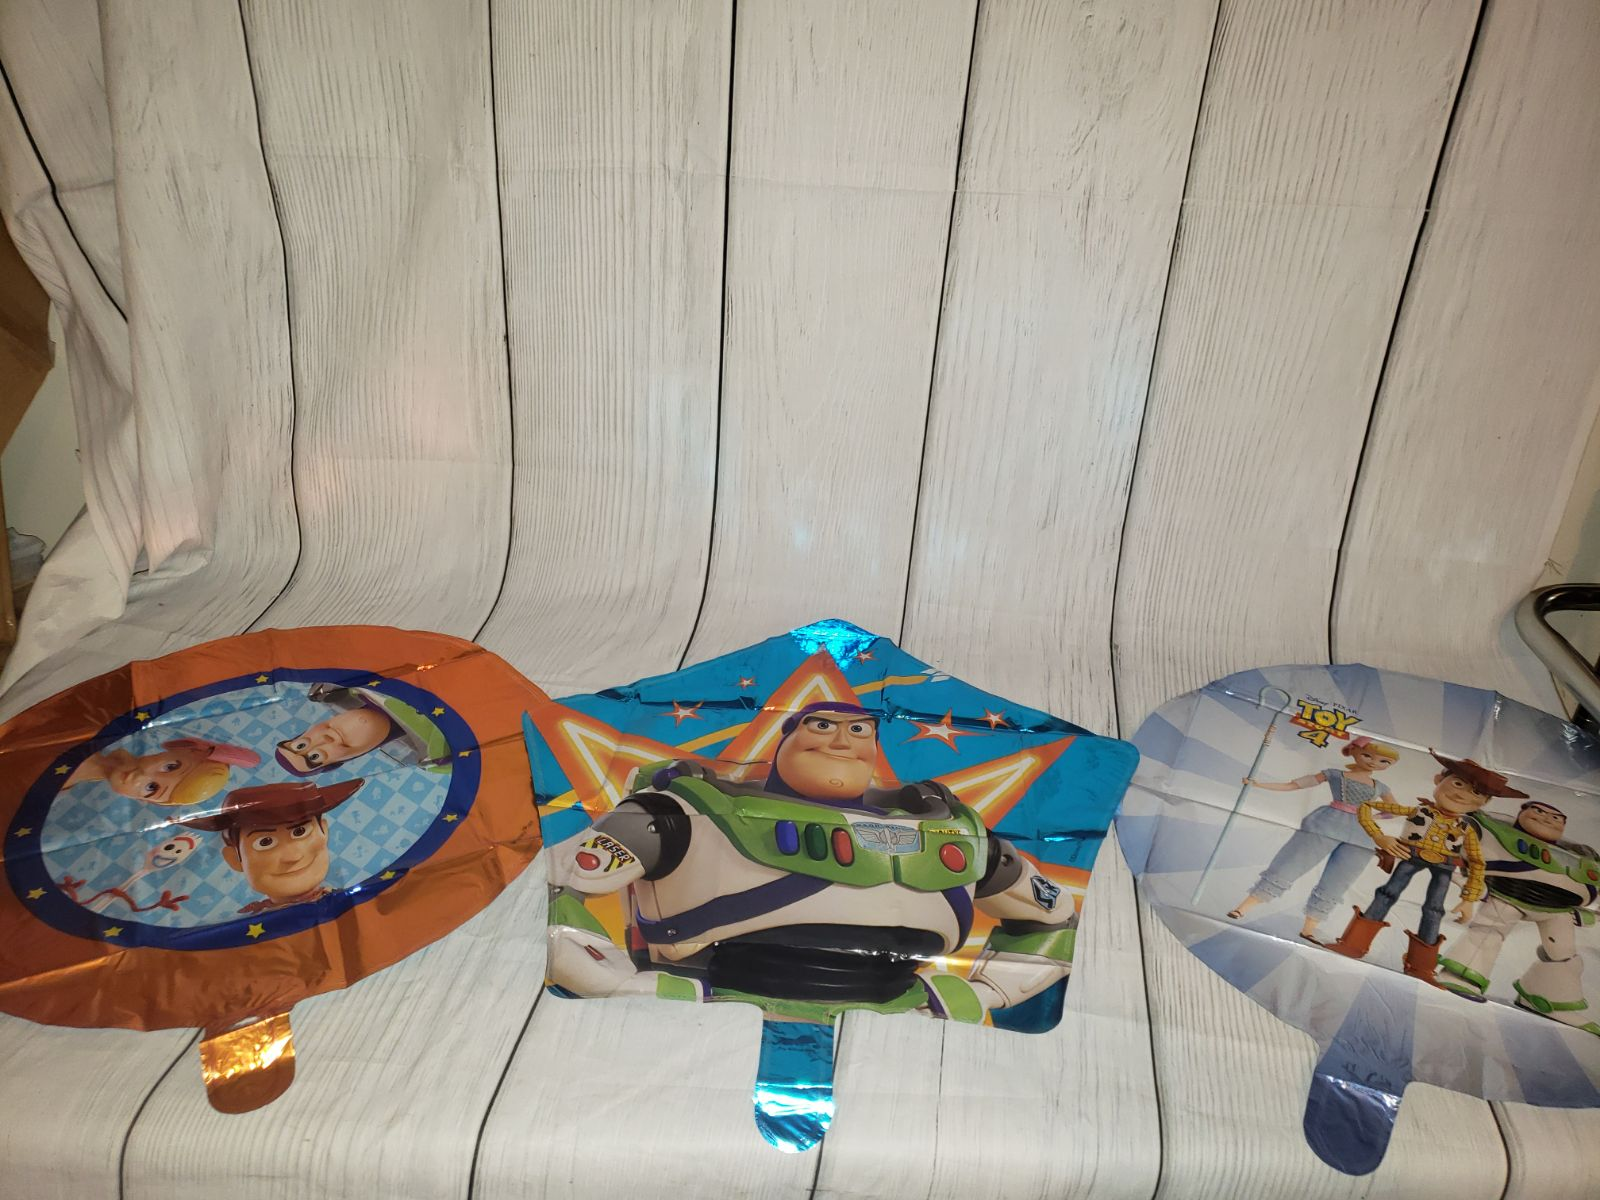 Toy story 4 balloons 5 count